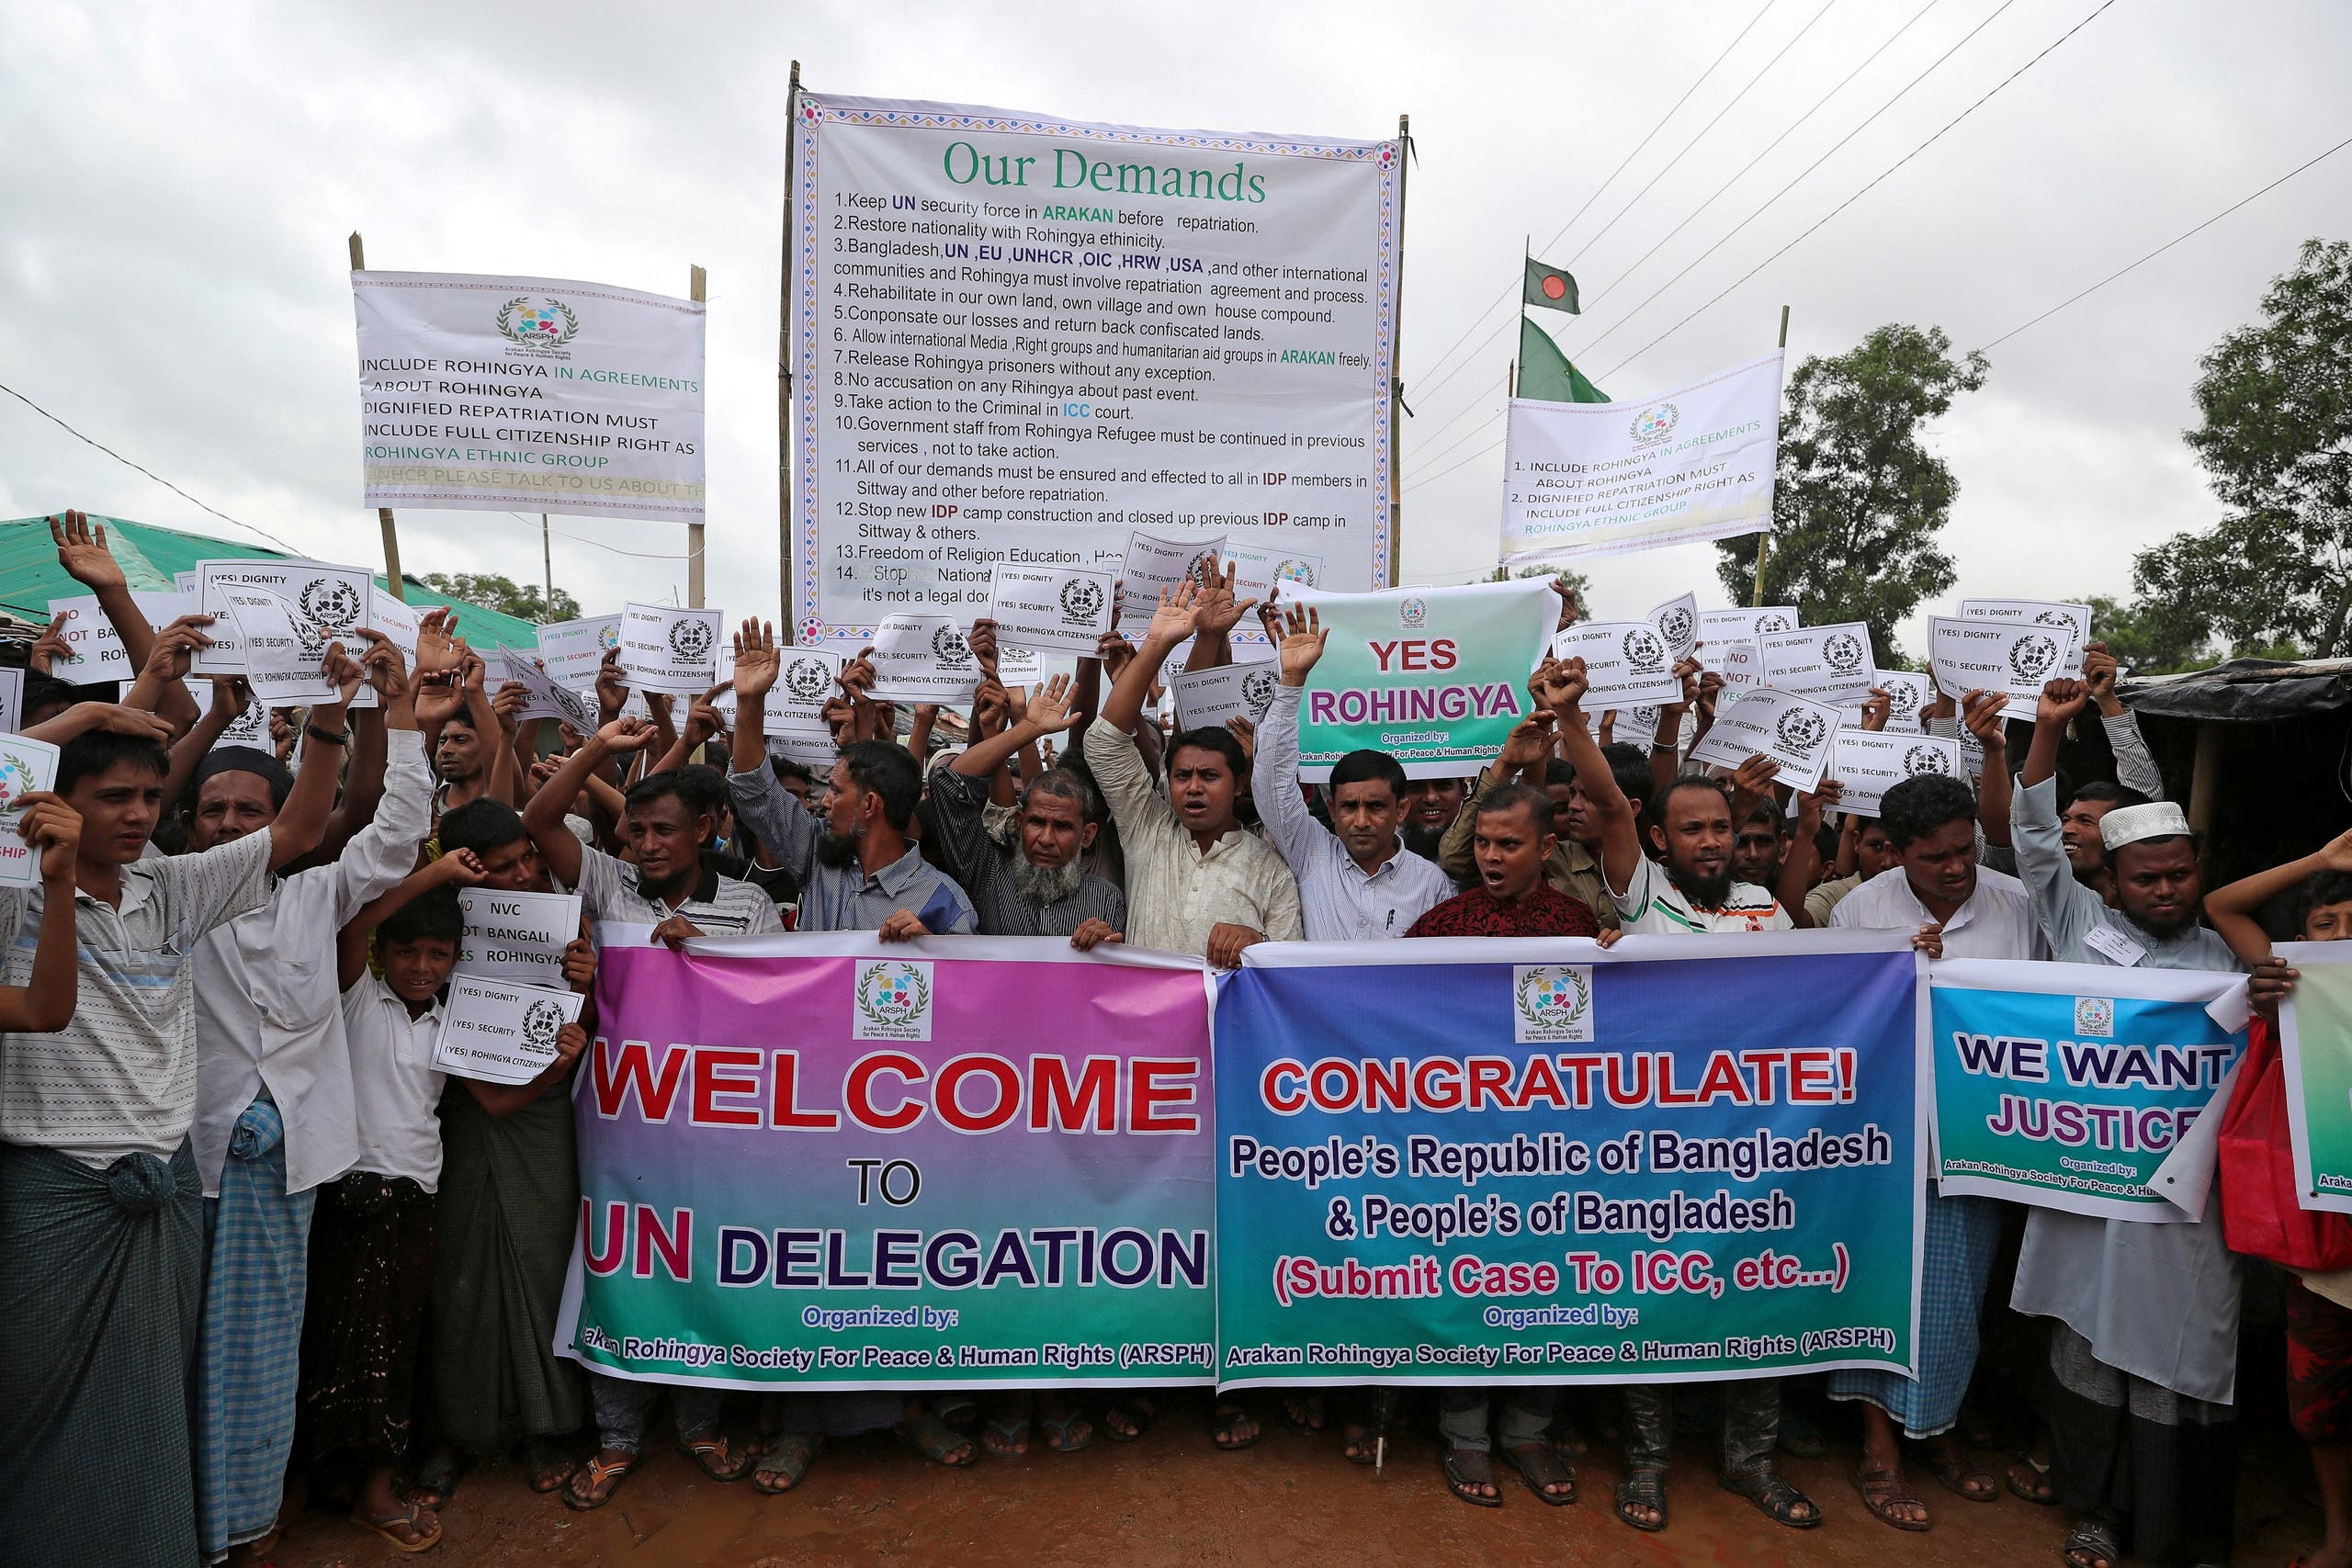 Rohingya refugees hold banners and placards prior to the arrival of UN secretary general Antonio Guterres and World Bank president Jim Yong Kim at the Kutupalong refugee camp in Cox's Bazar, Bangladesh, July 2, 2018. REUTERS